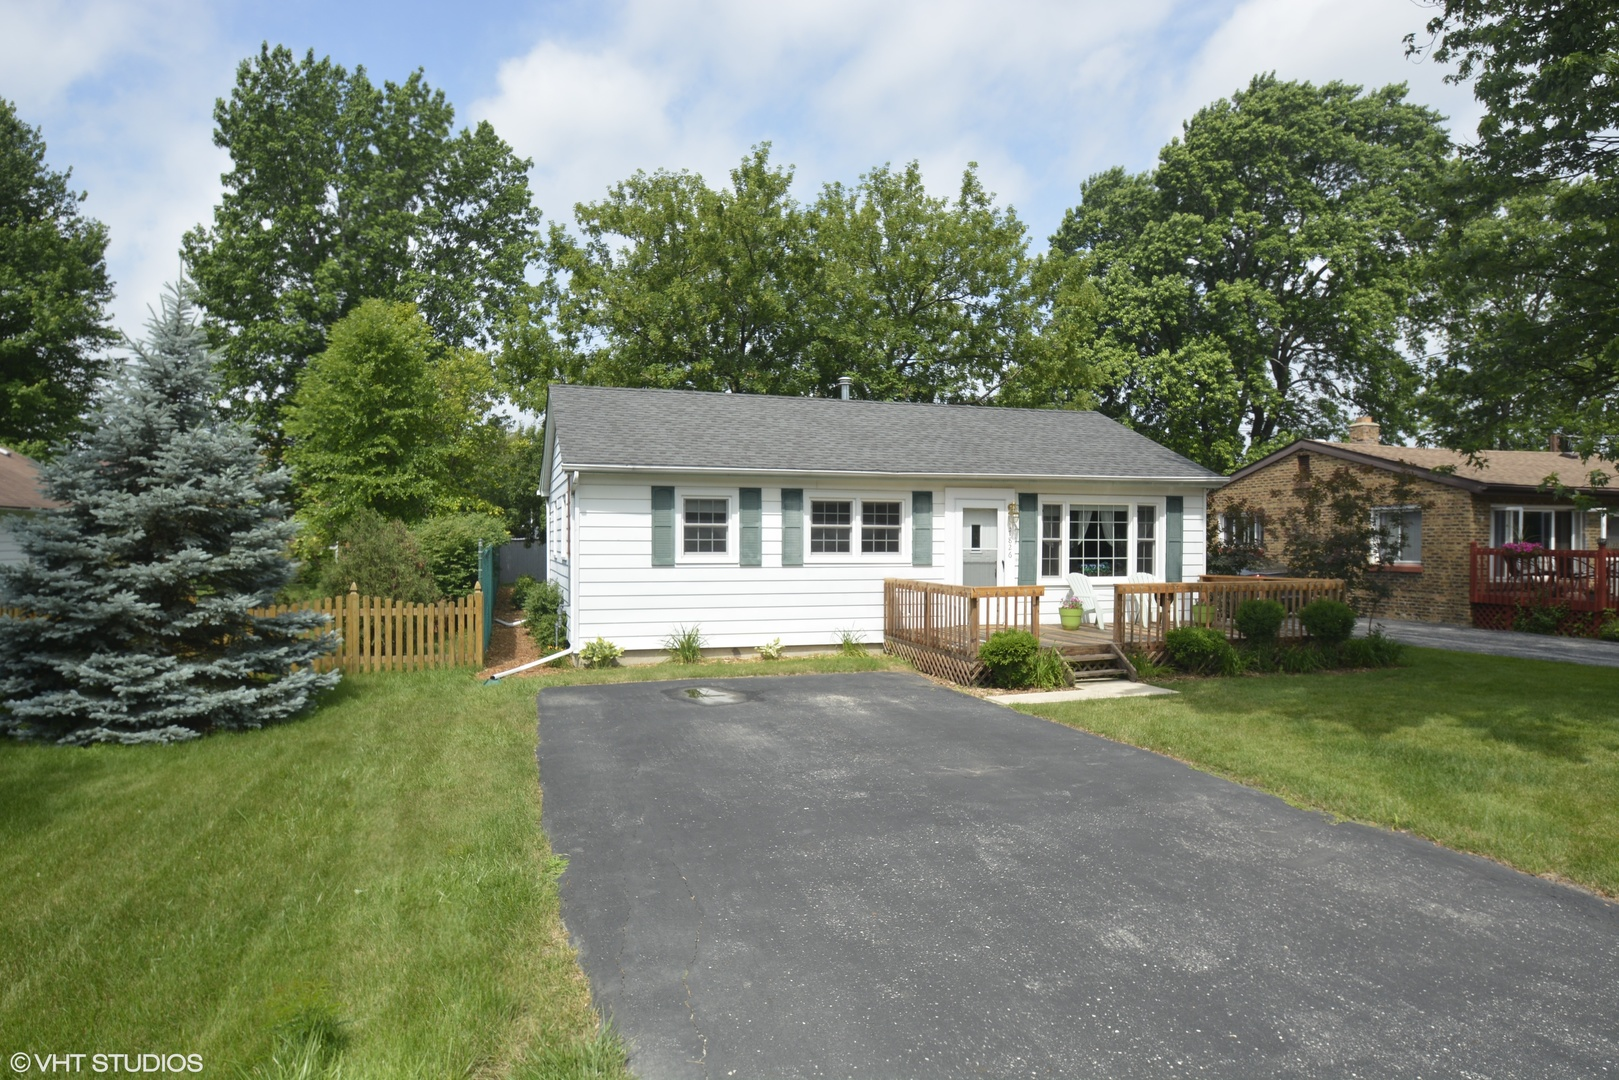 17826 RIDGELAND Avenue, Tinley Park in Cook County, IL 60477 Home for Sale